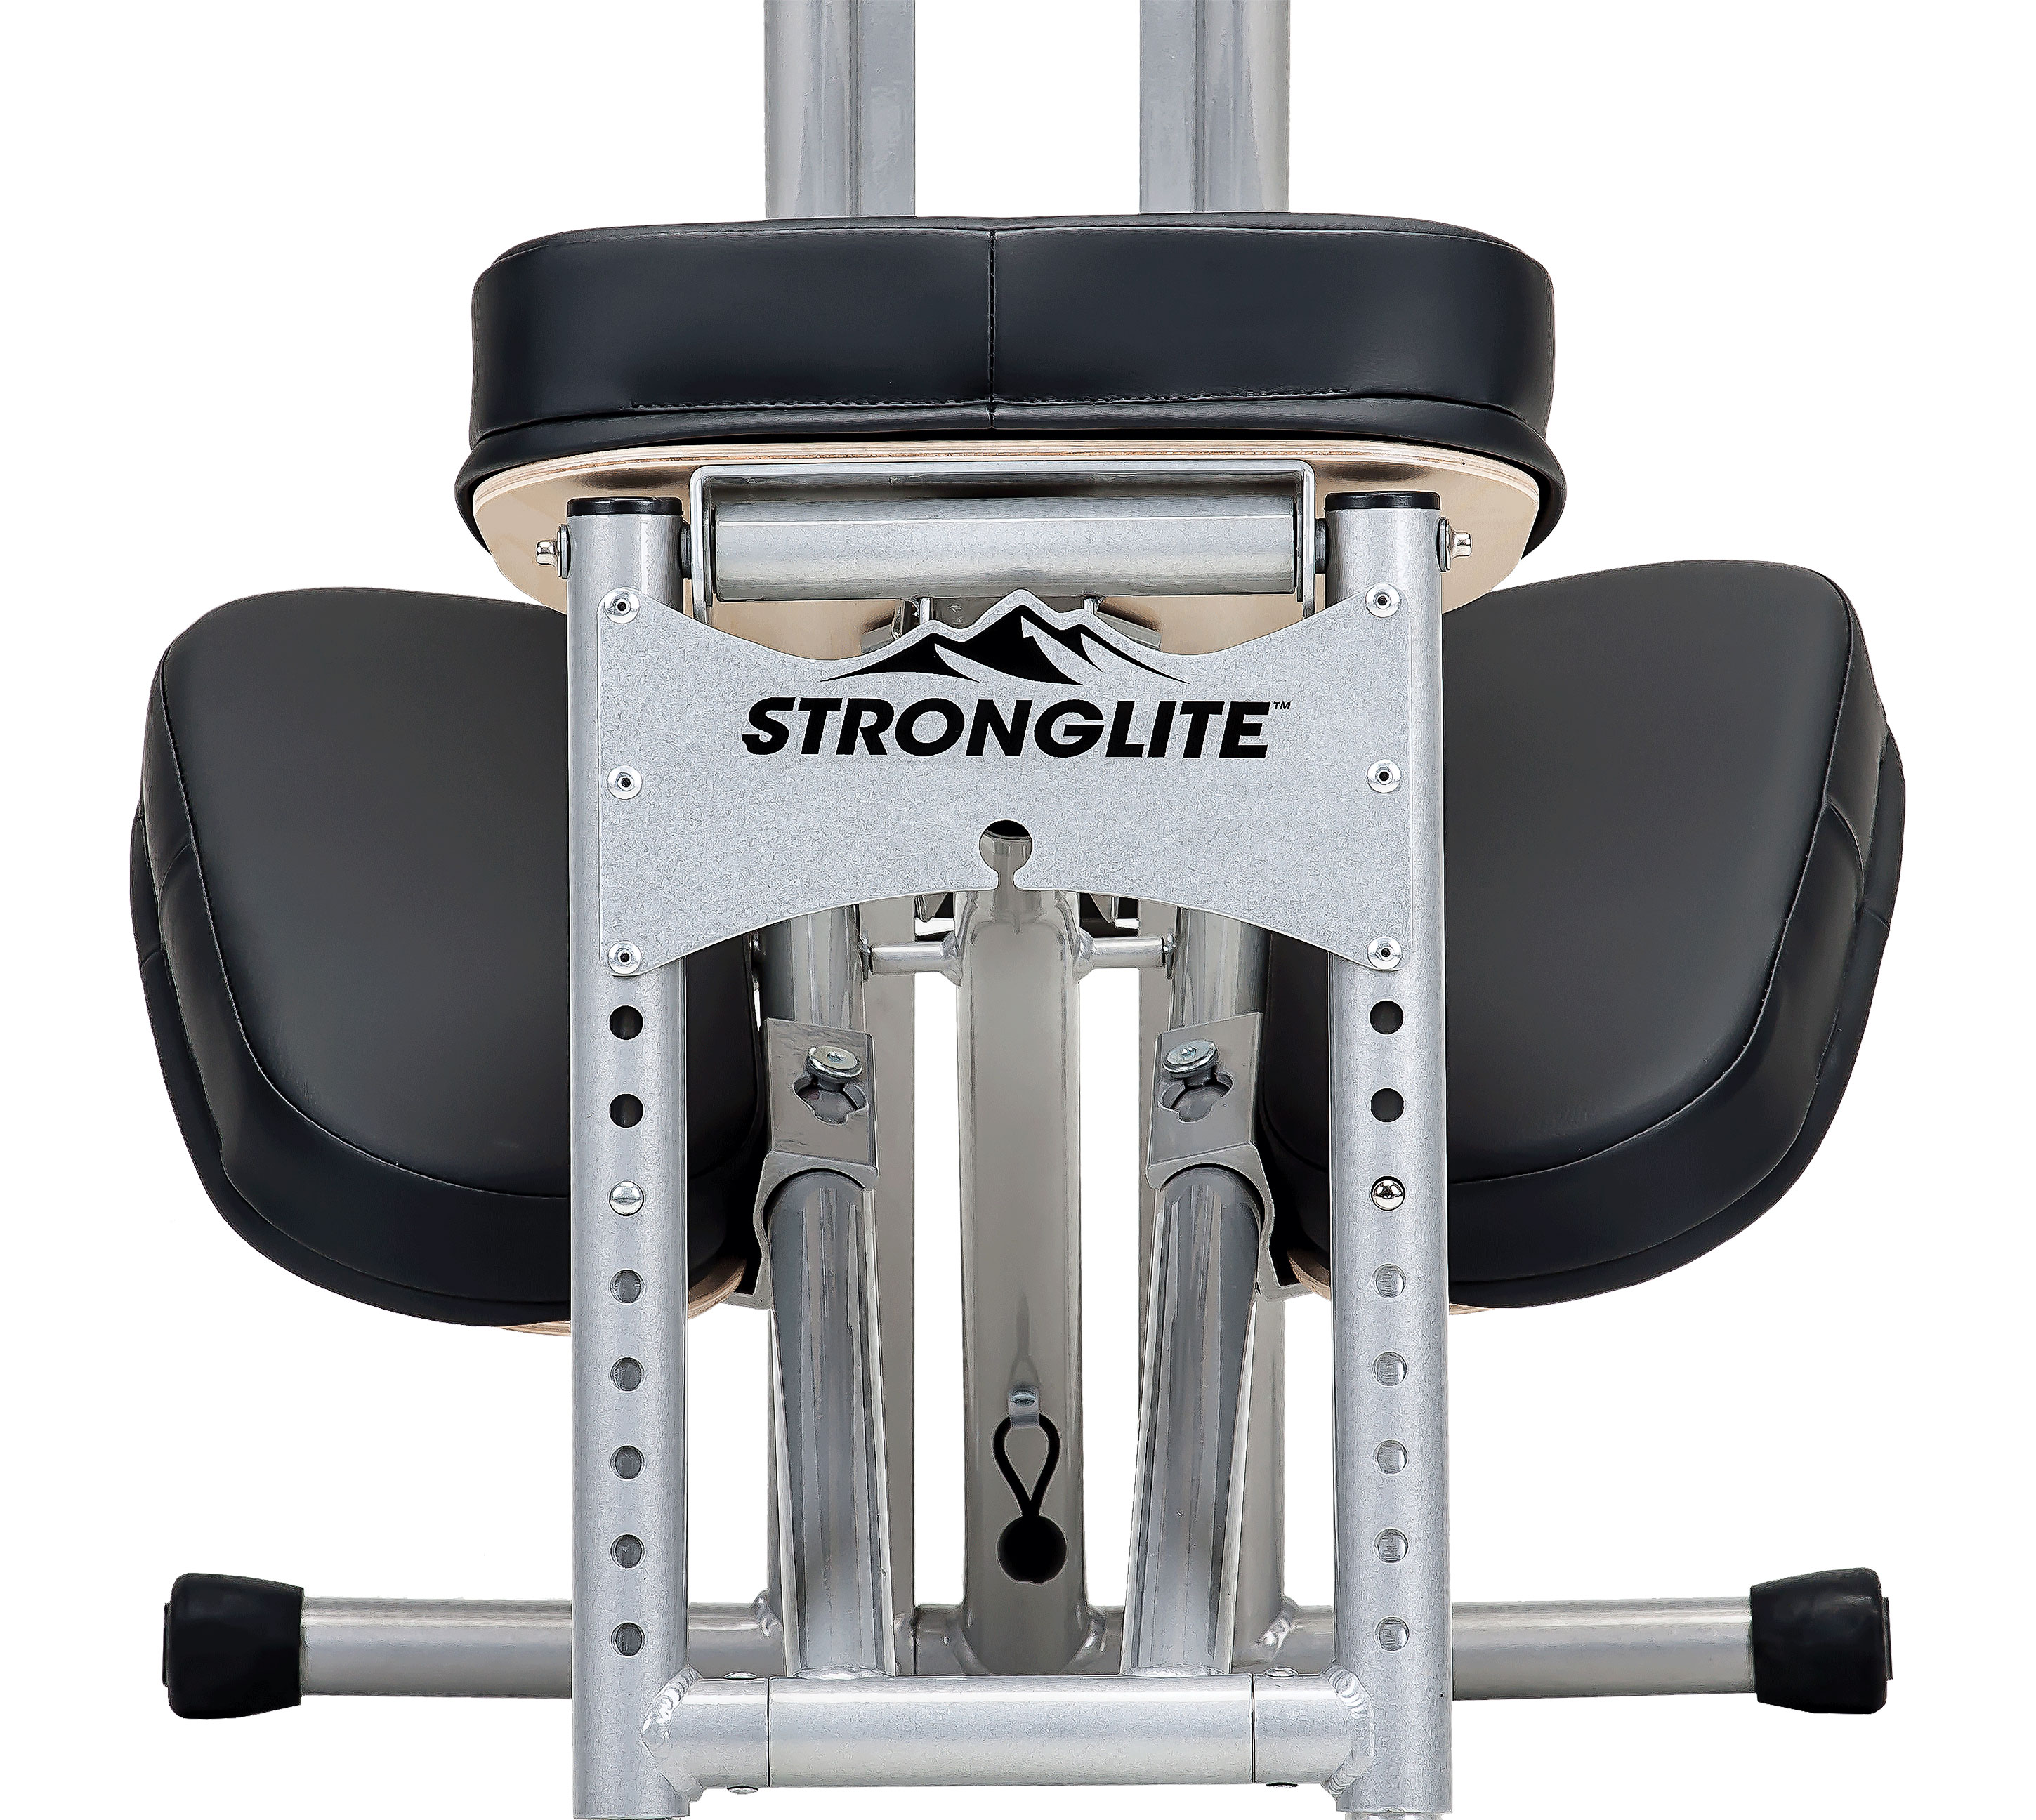 nrg massage chair swing youtube stronglite ergo pro ii portable and carrying case